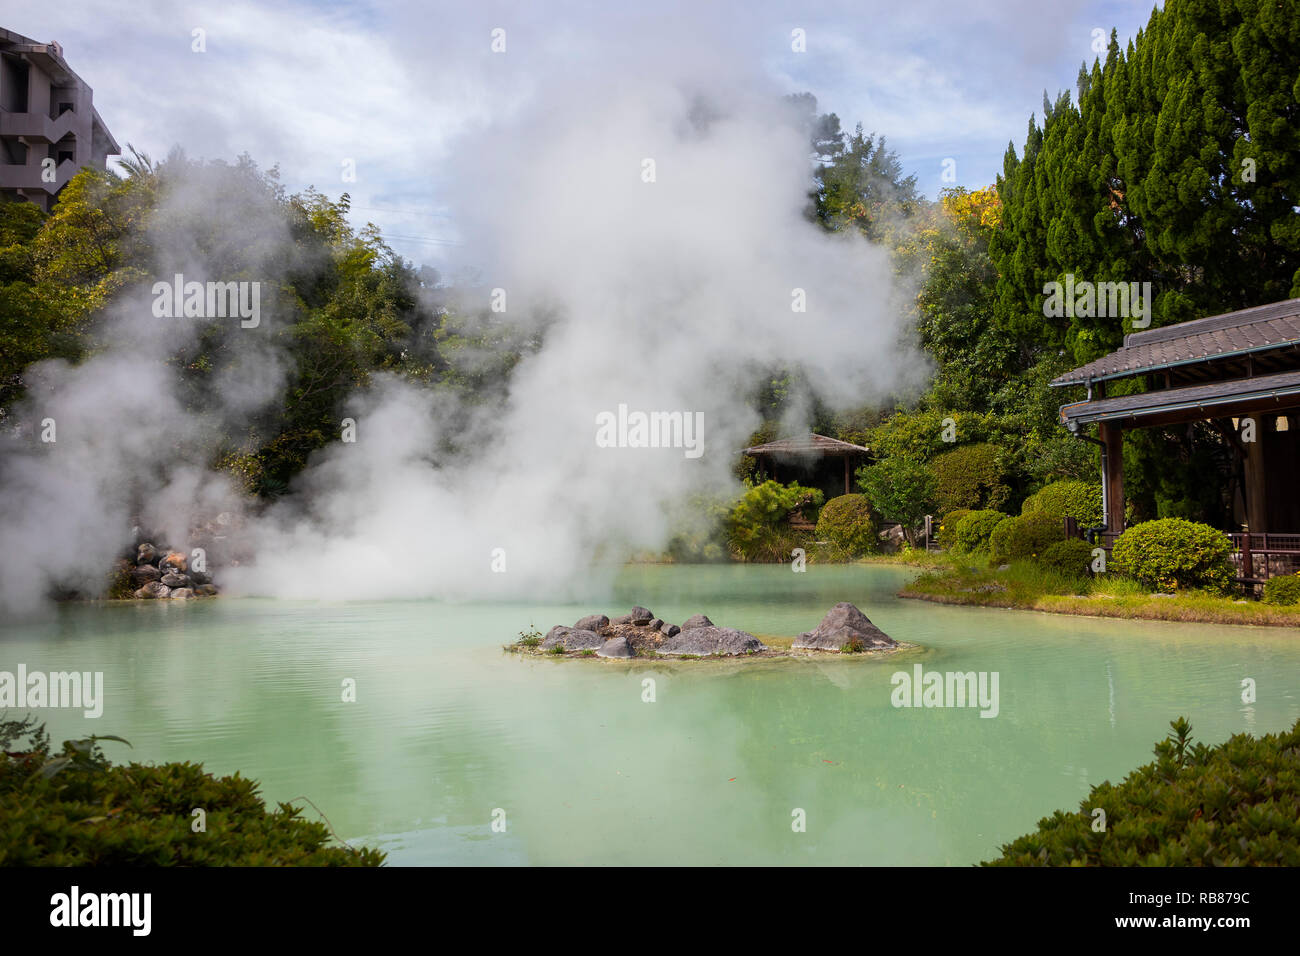 Beppu, Japan - November 2, 2018: Tatsumaki Jigoku, geothermic pool, on the hell tour in Beppu - Stock Image